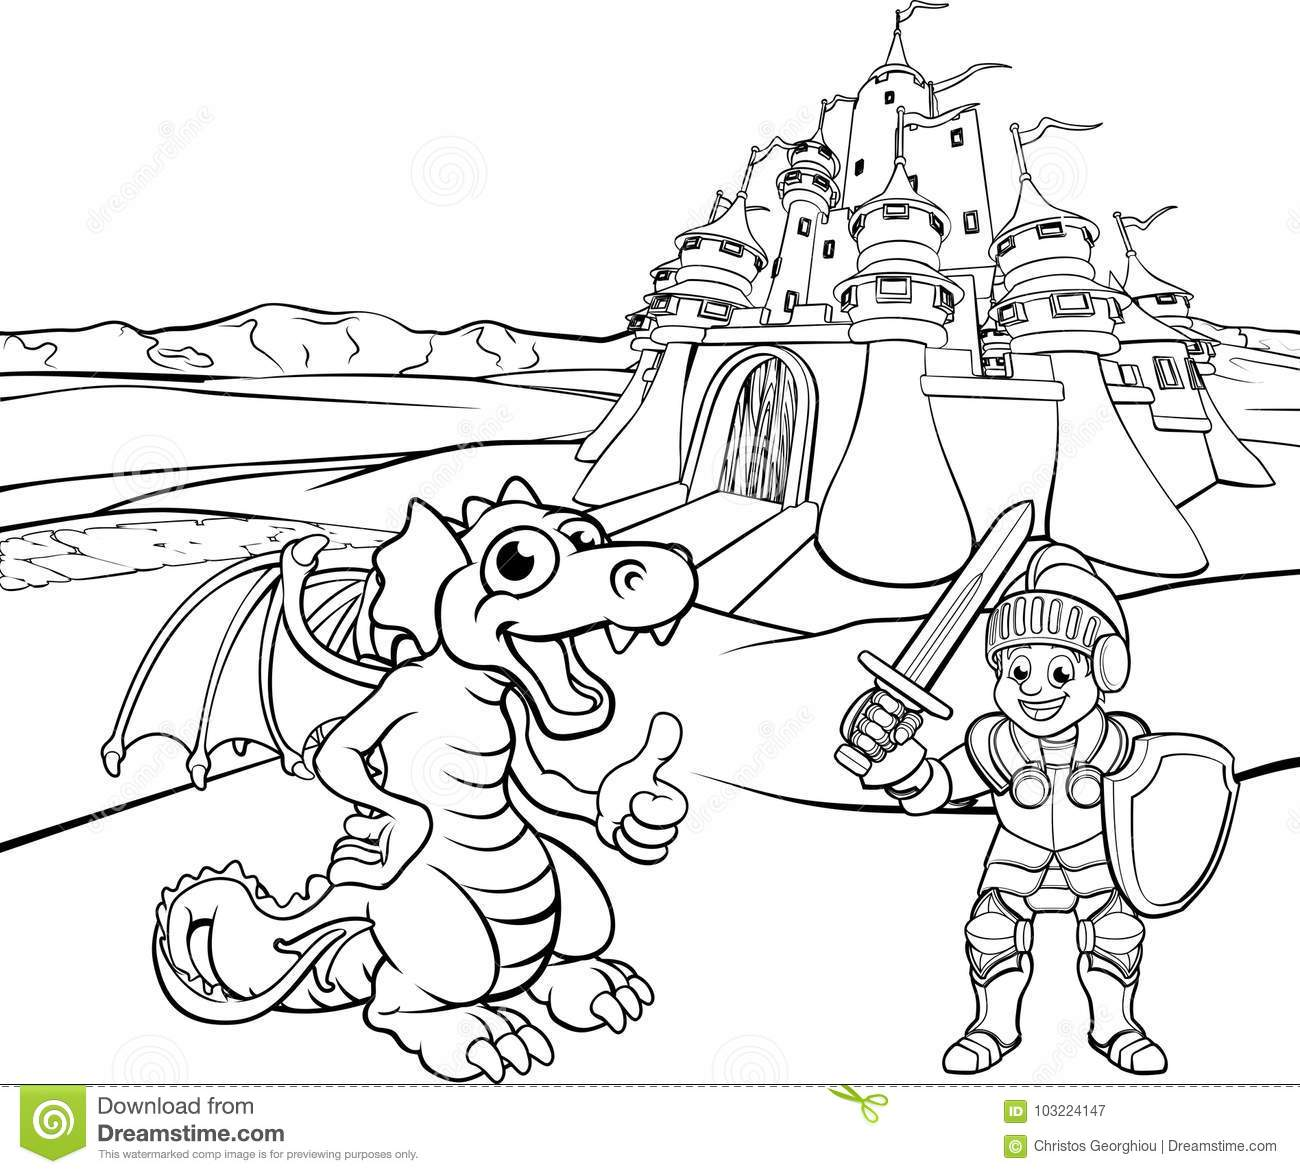 knight fighting dragon coloring page fight with the dragon ludwig richter knight battle page dragon fighting coloring knight